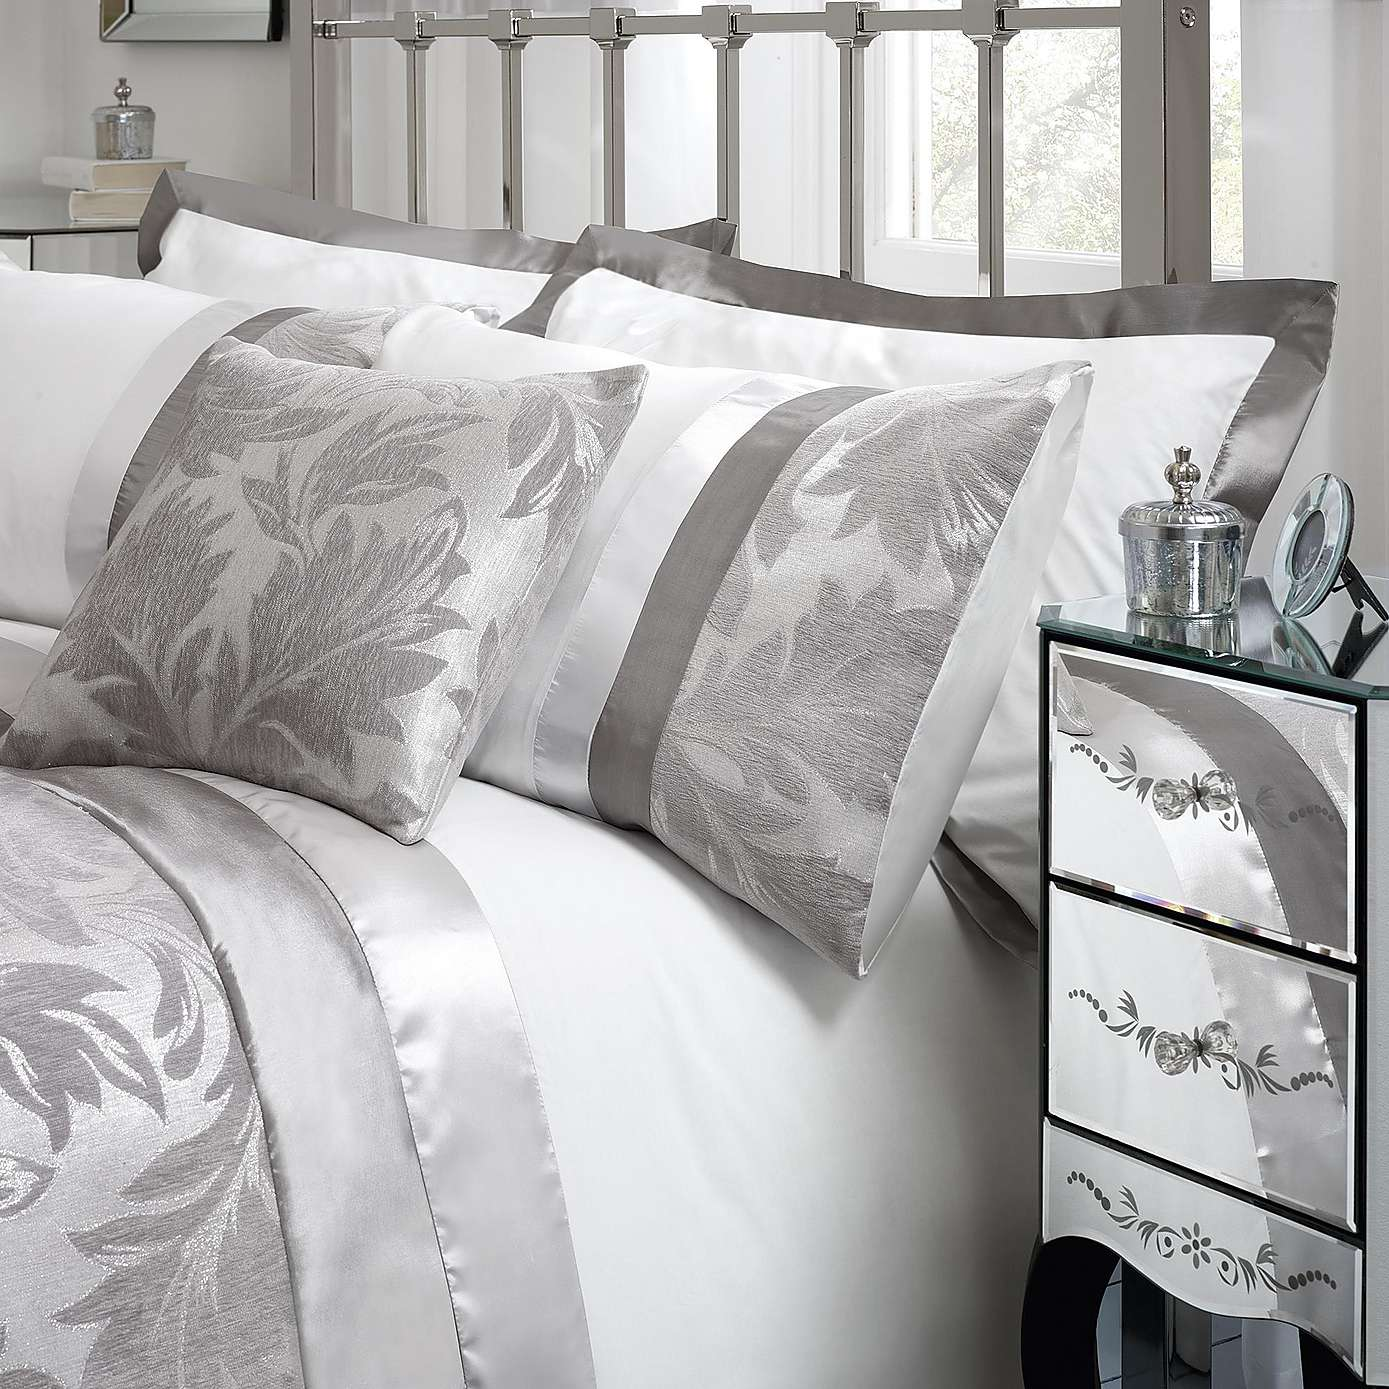 Charming damask bedding for bed decorating ideas with damask bedding set and damask crib bedding